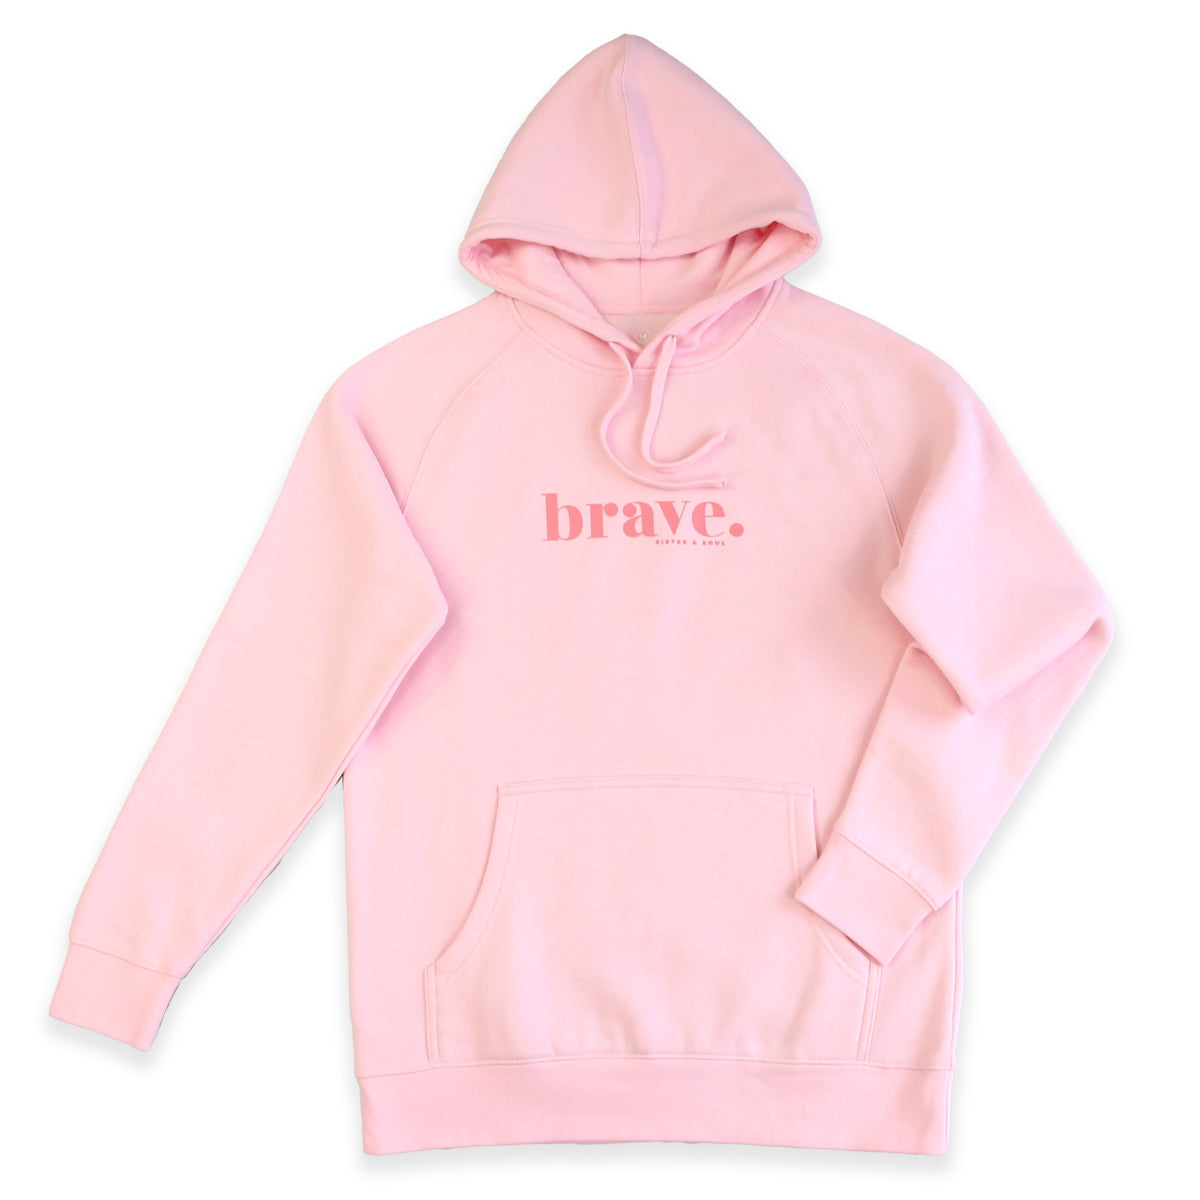 BRAVE HOODIE - Soft Pink with Pink Print